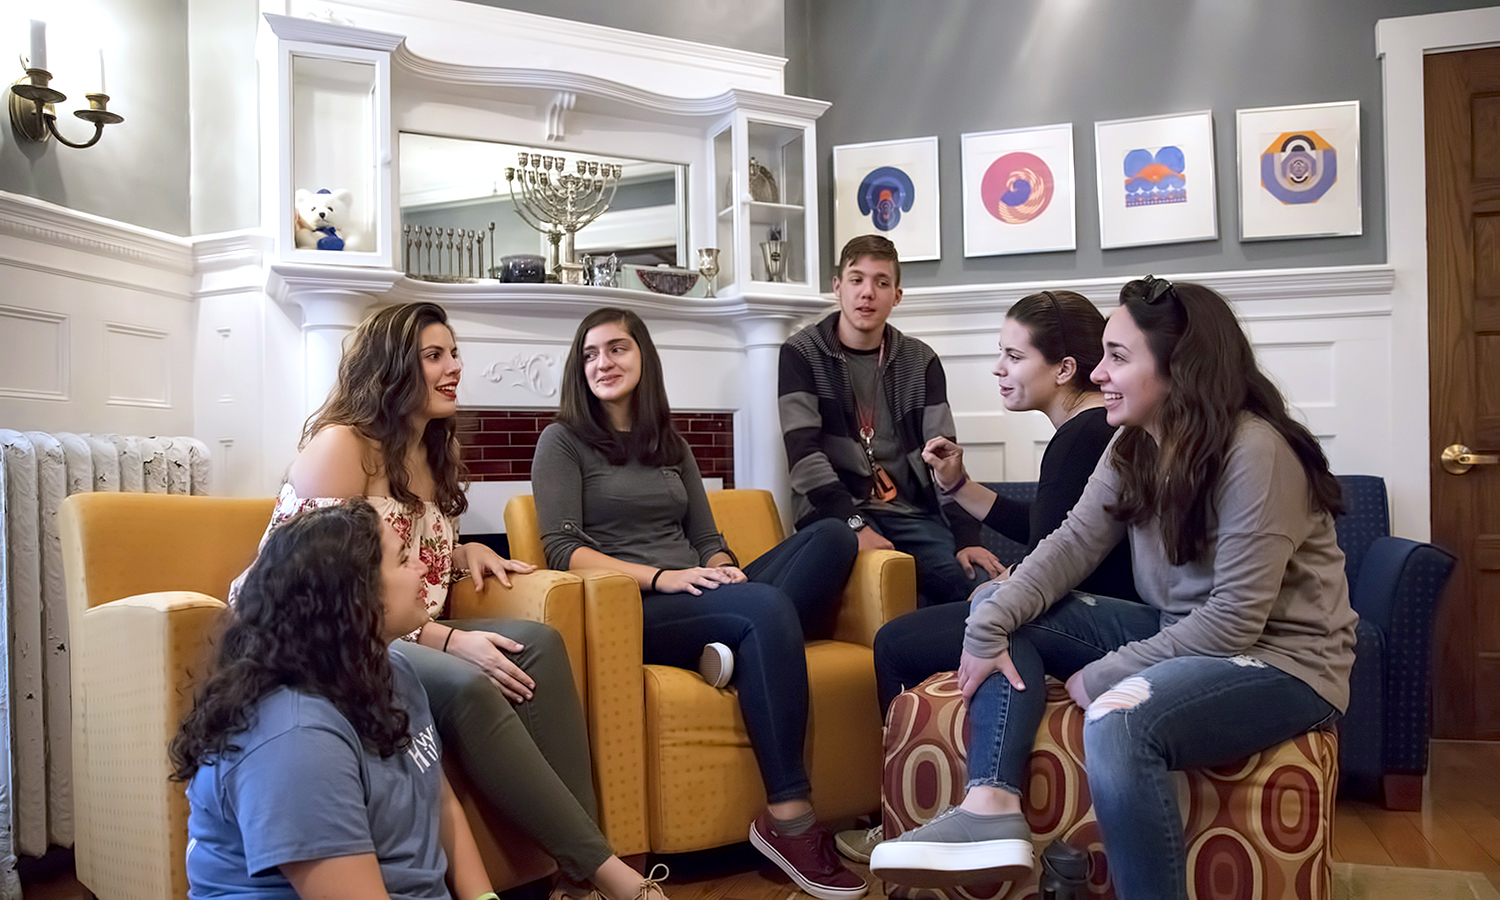 Students meet in the living room of the Abbe Center for Jewish Life before Shabbat dinner.